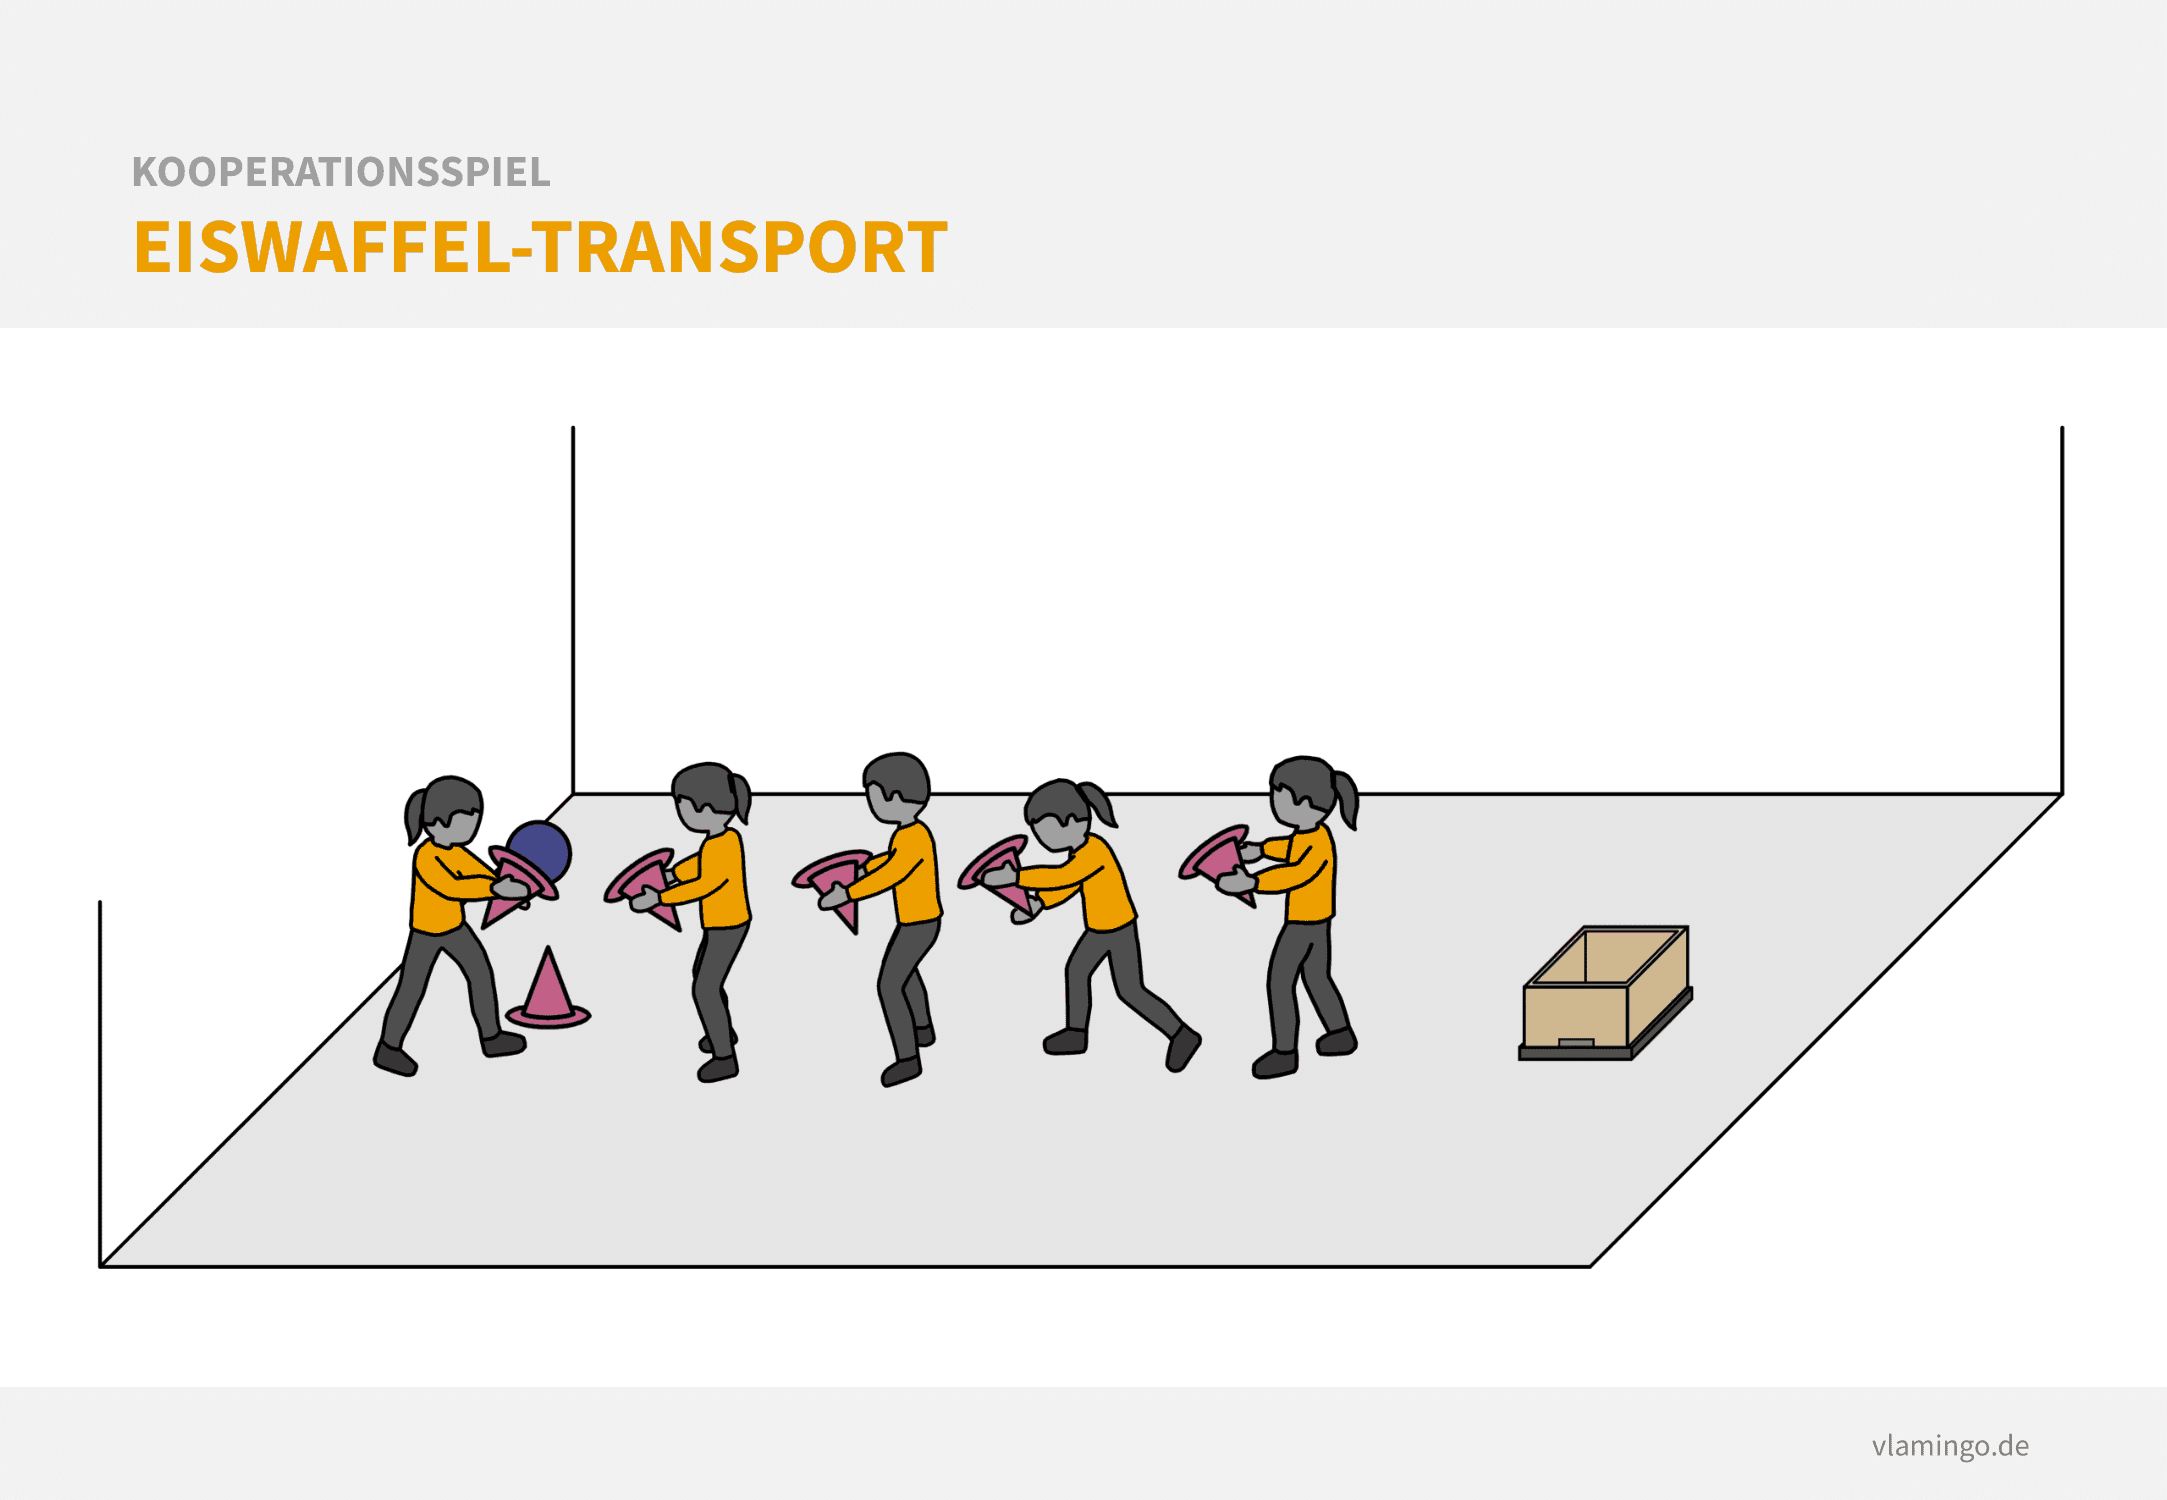 Kooperationsspiel: Eiswaffel-Transport